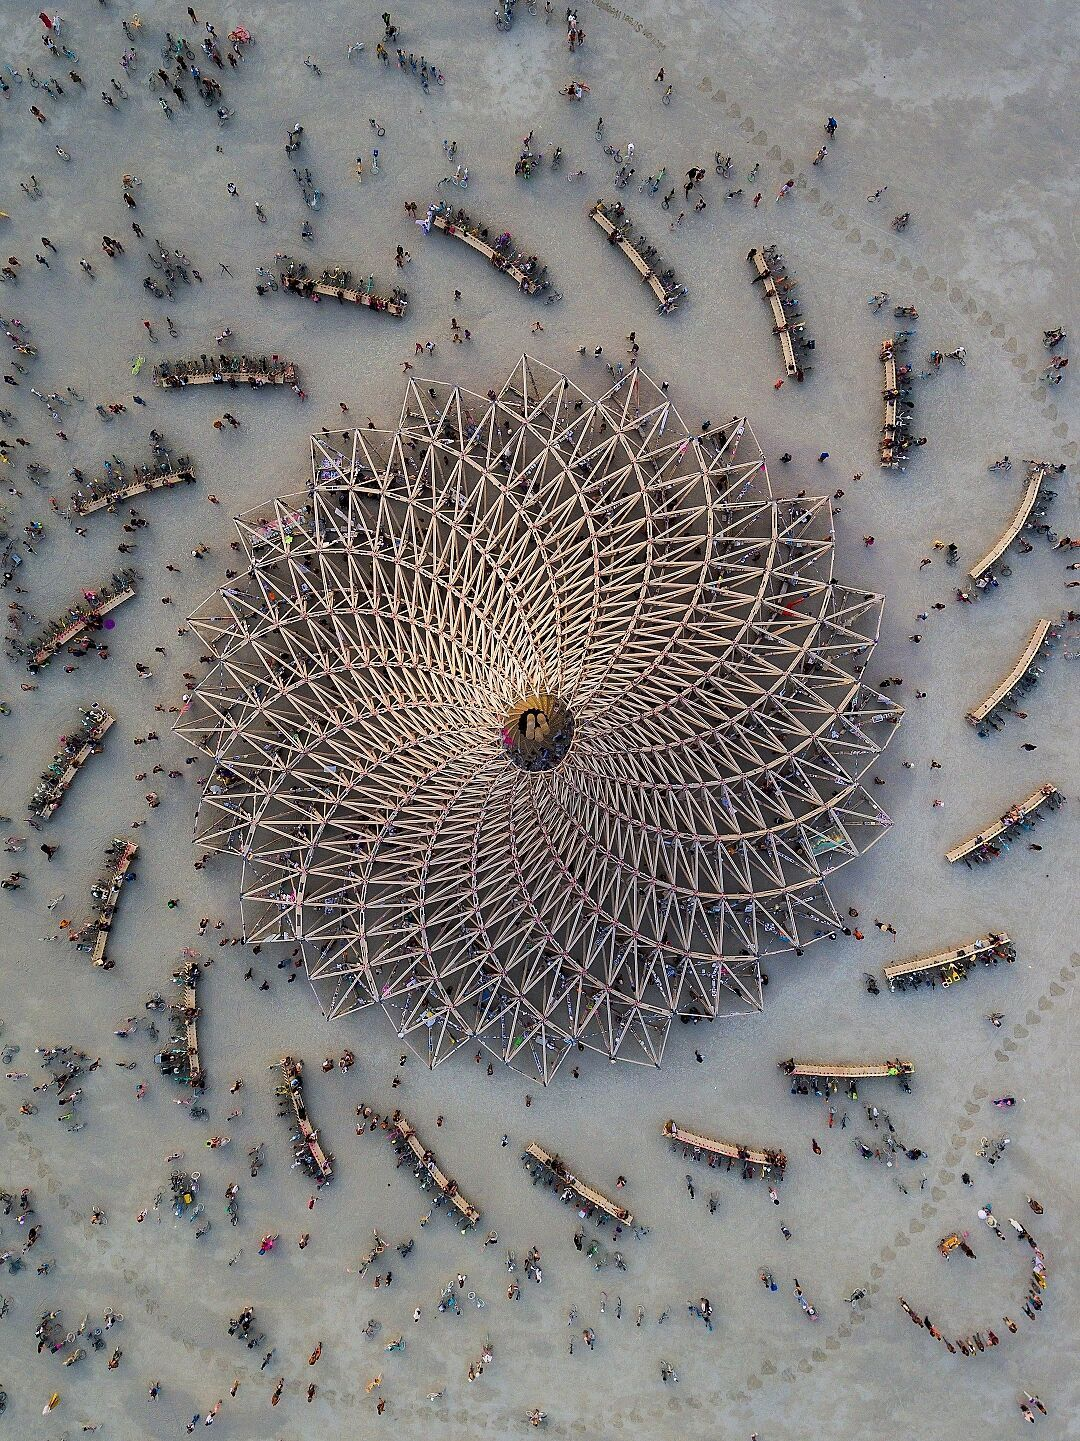 Temple Galaxia - Burning Man 2018 with all of the participants surrounding the temple from a bird's eye view - Photo by Alex Medina